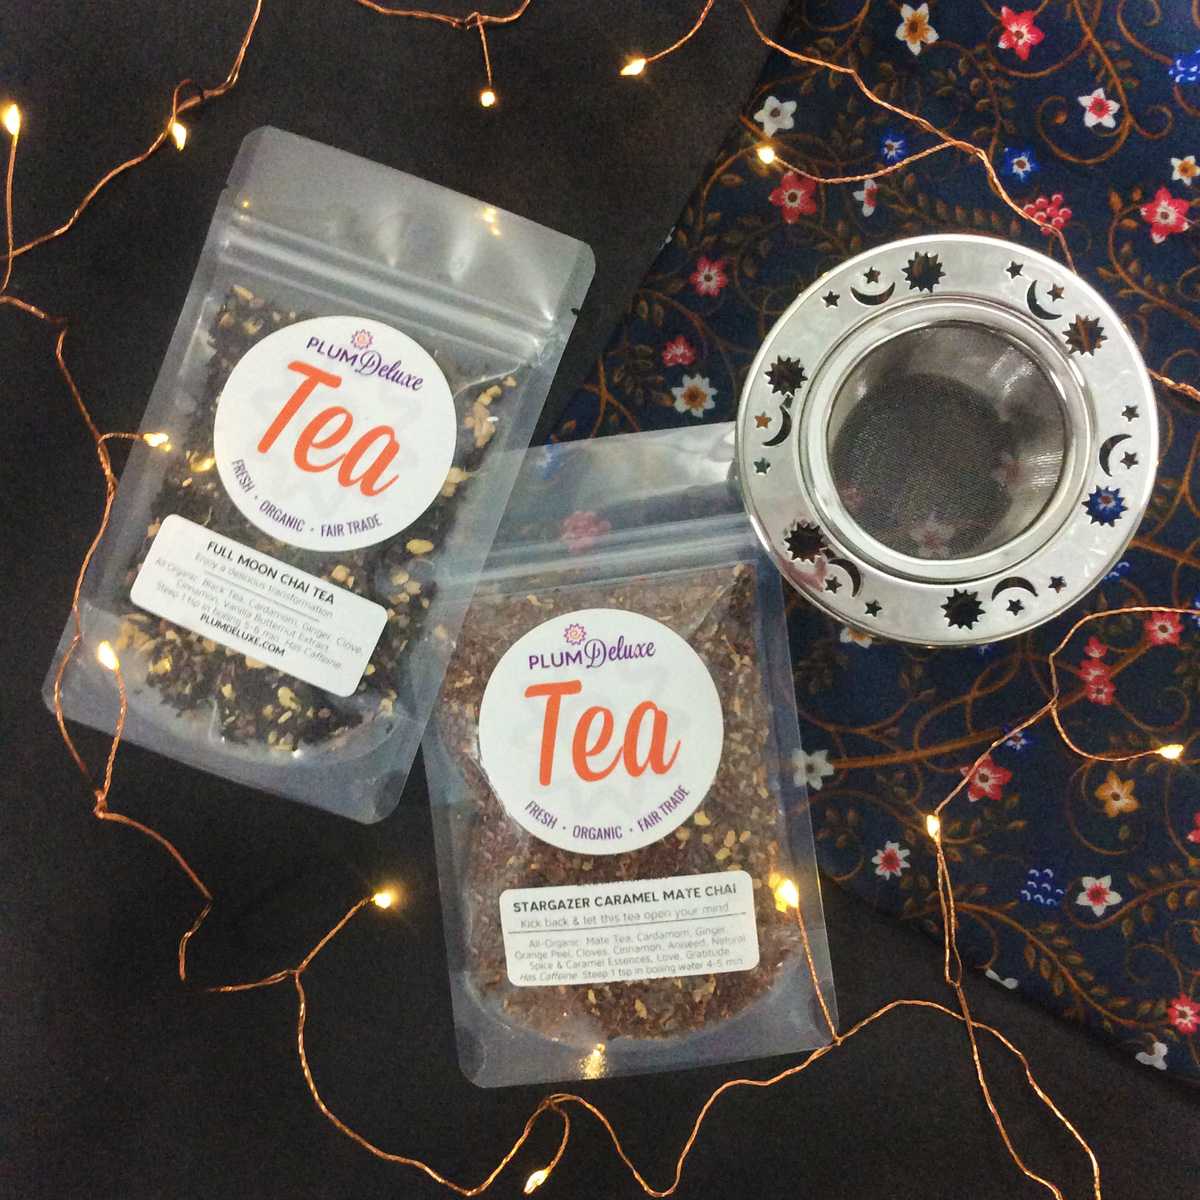 Overhead view of two bags of Plum Deluxe loose leaf tea and a celestial metal tea infuser on a dark blue floral cloth surrounded by twinkle lights.